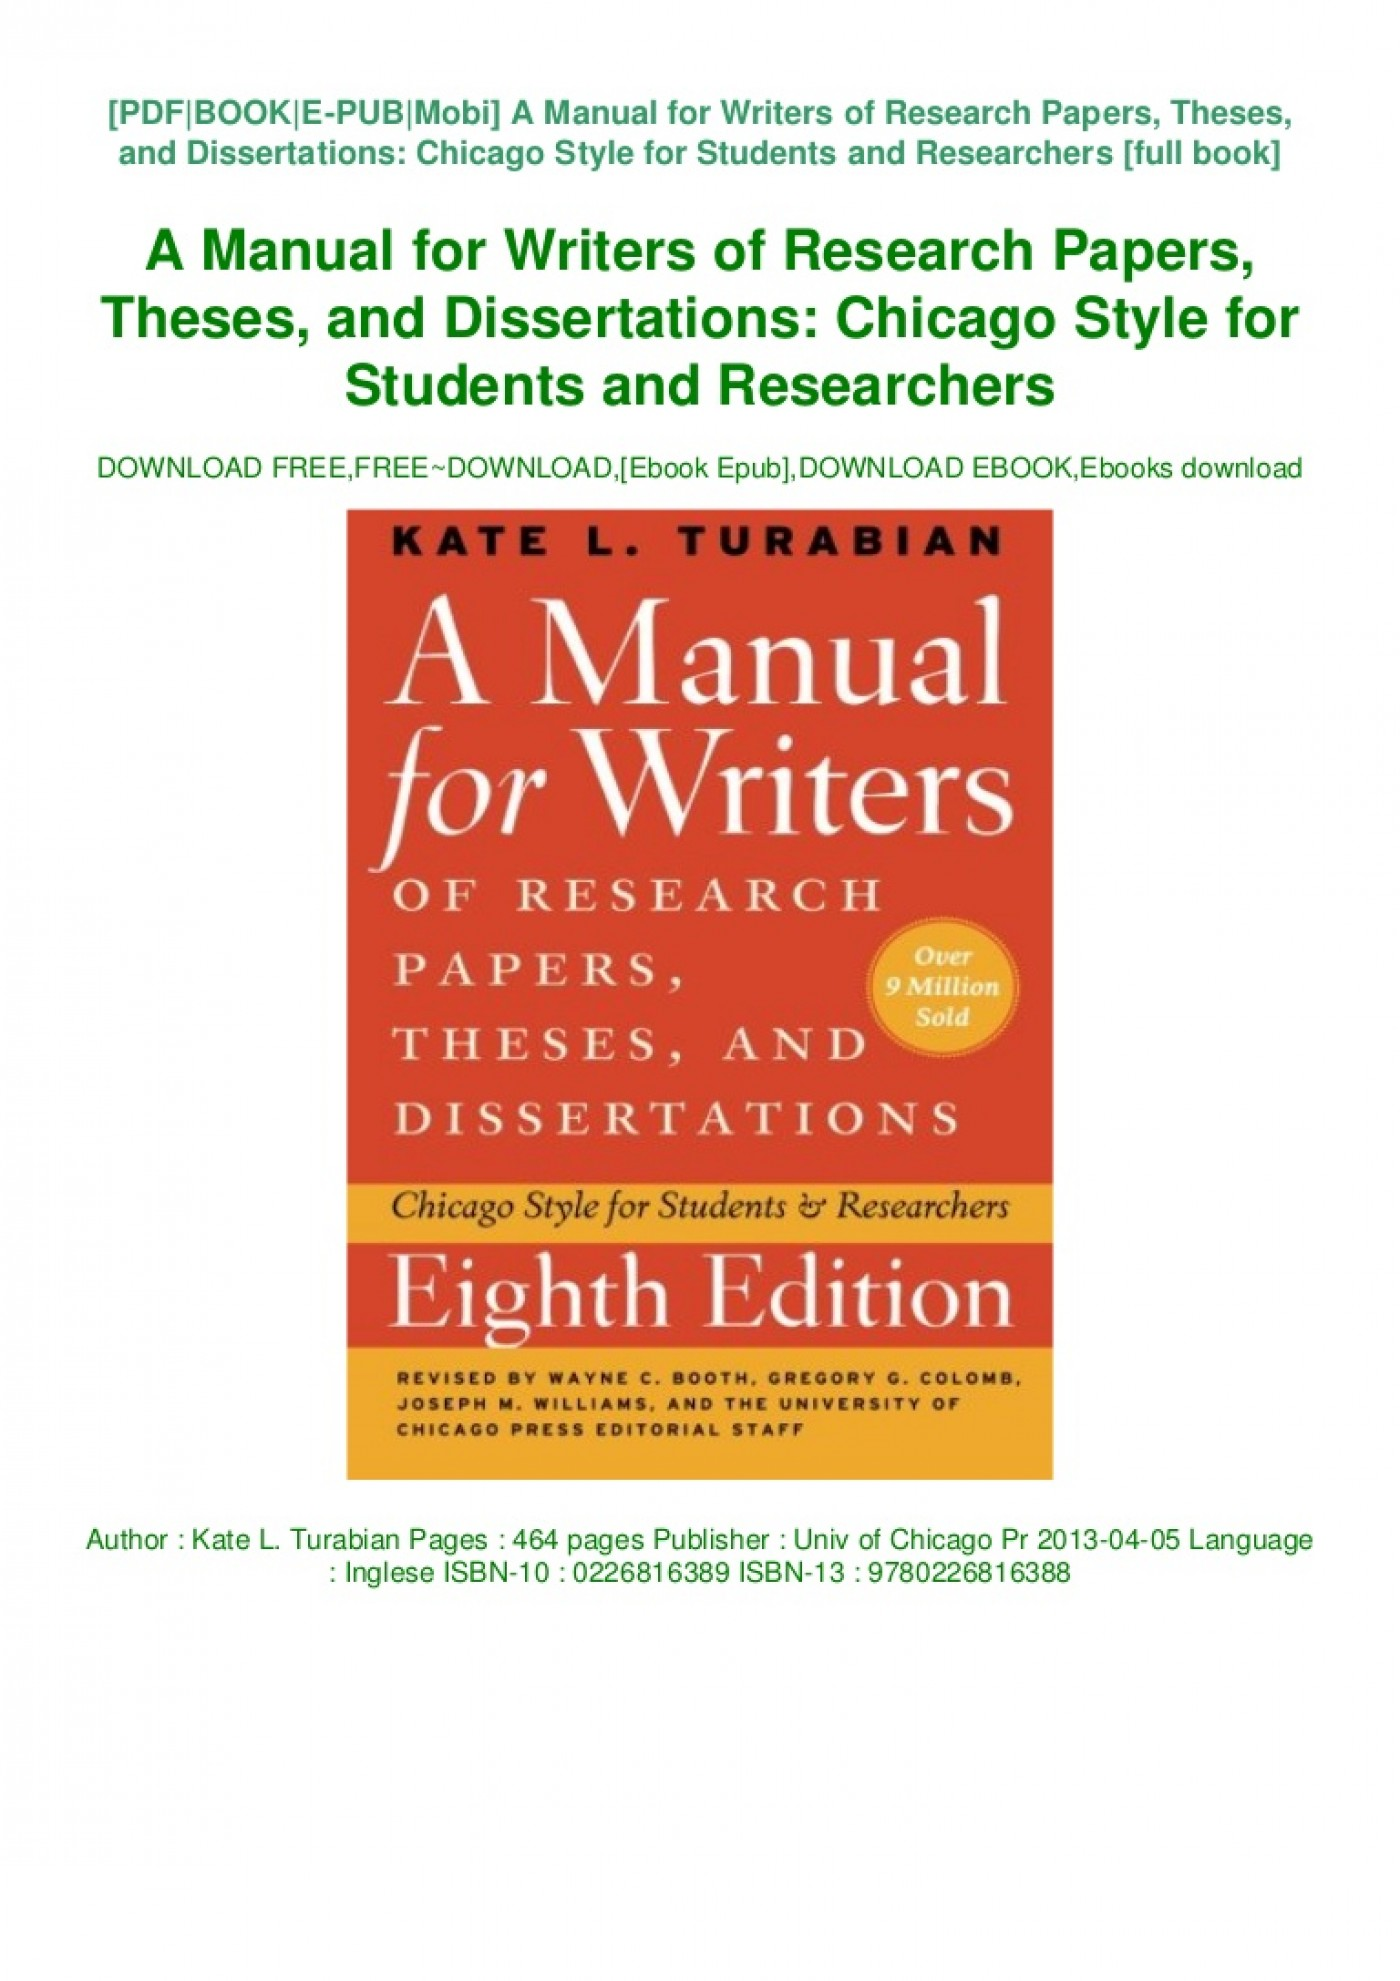 005 Book Manual For Writers Of Researchs Theses And Thumbnail Dissertations Sensational A Research Papers Ed. 8 8th Edition Ninth Pdf 1400